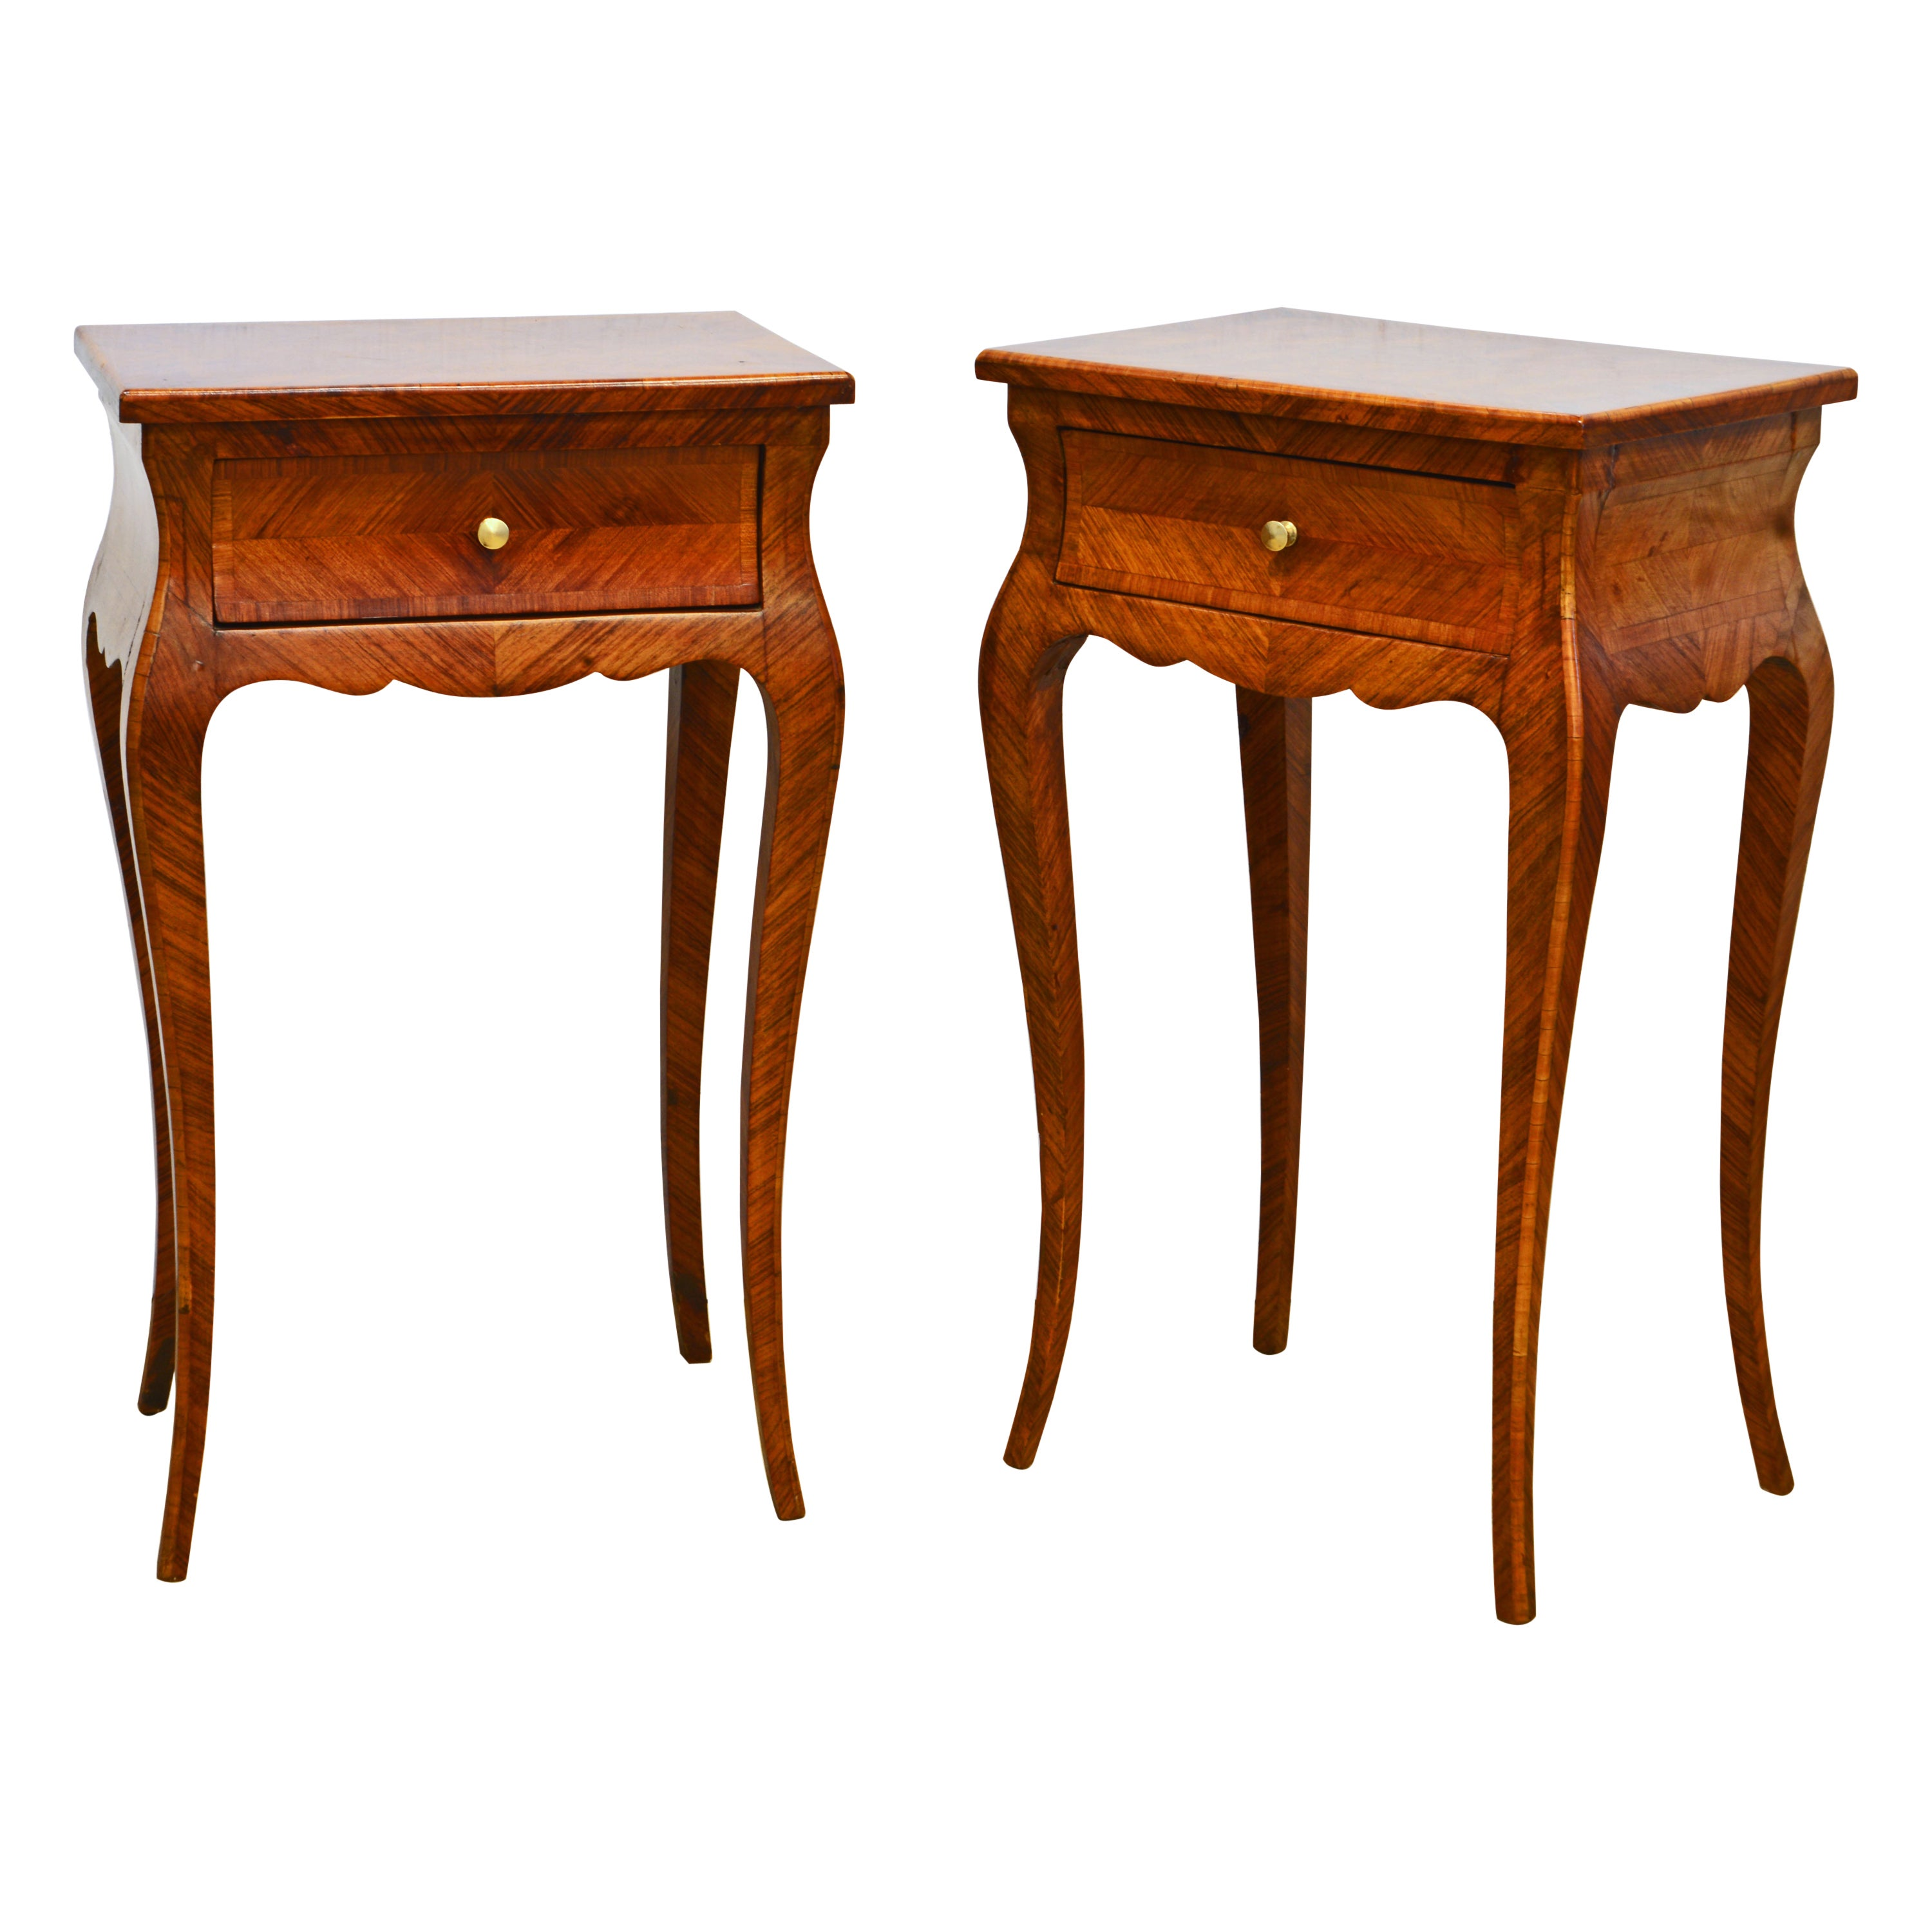 Pair of French Louis XV Style Petite Parquetry Kingwood Commodes